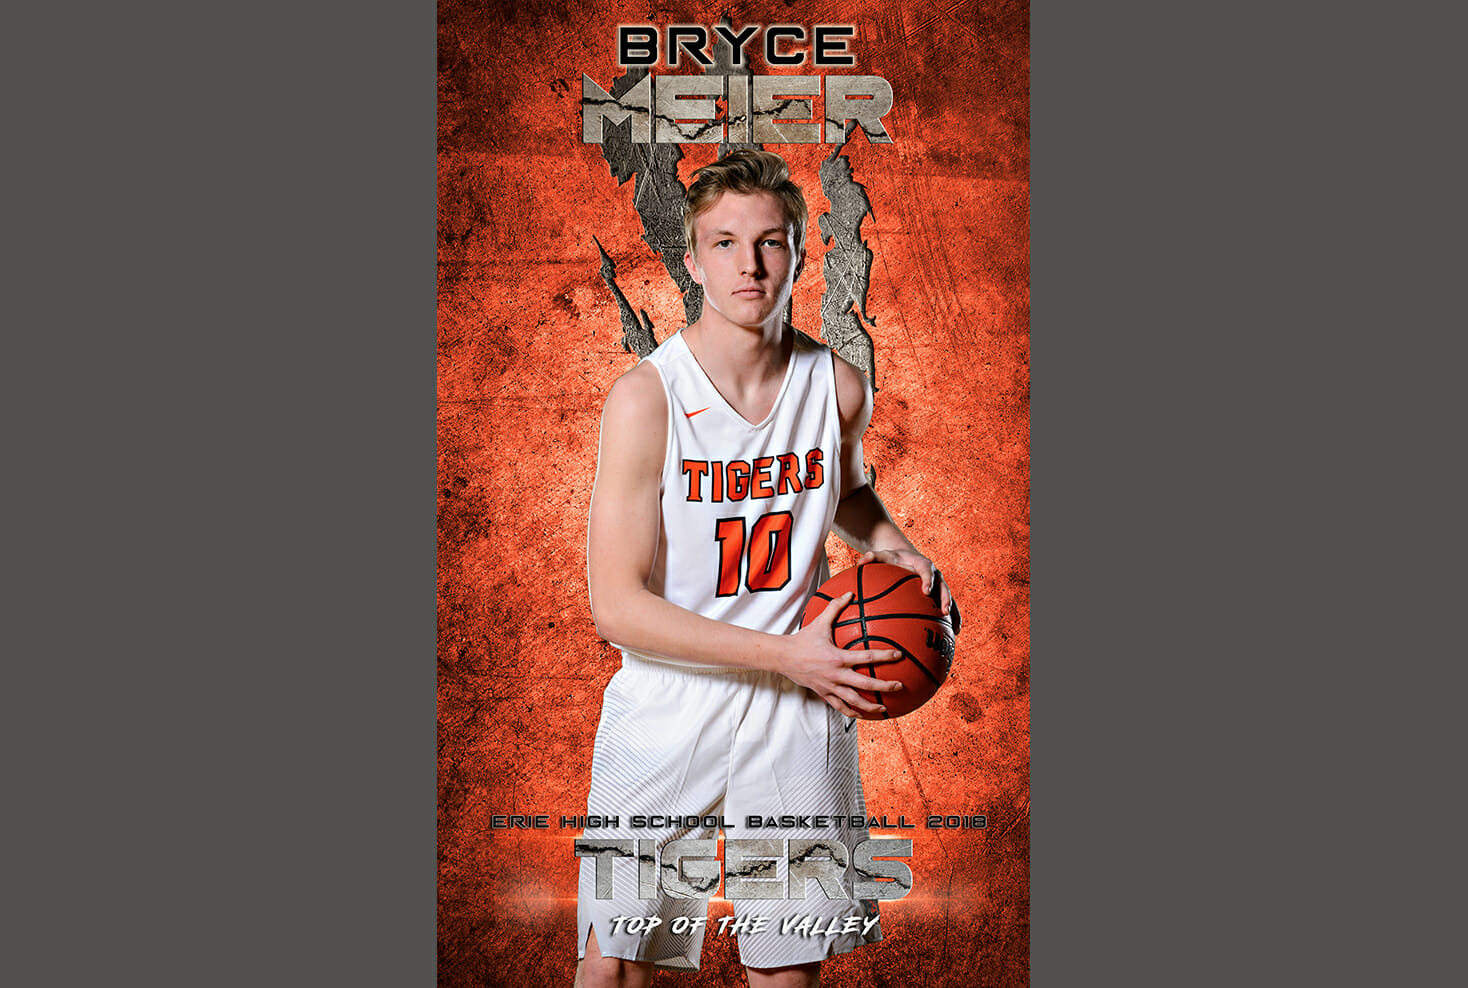 Erie High School Basketball senior banner